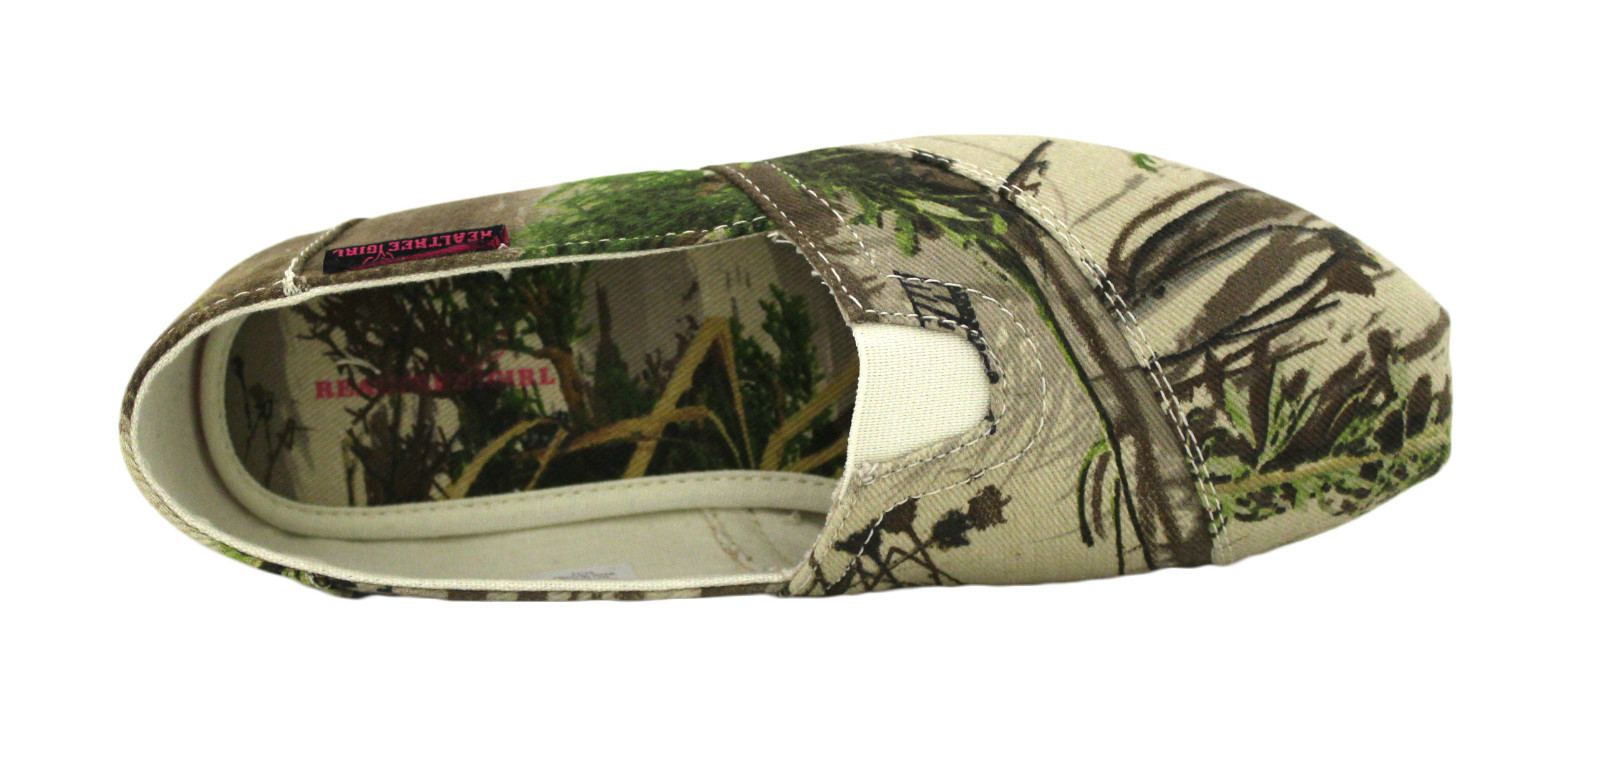 Realtree@ Camo Slip on Shoes - Best Price